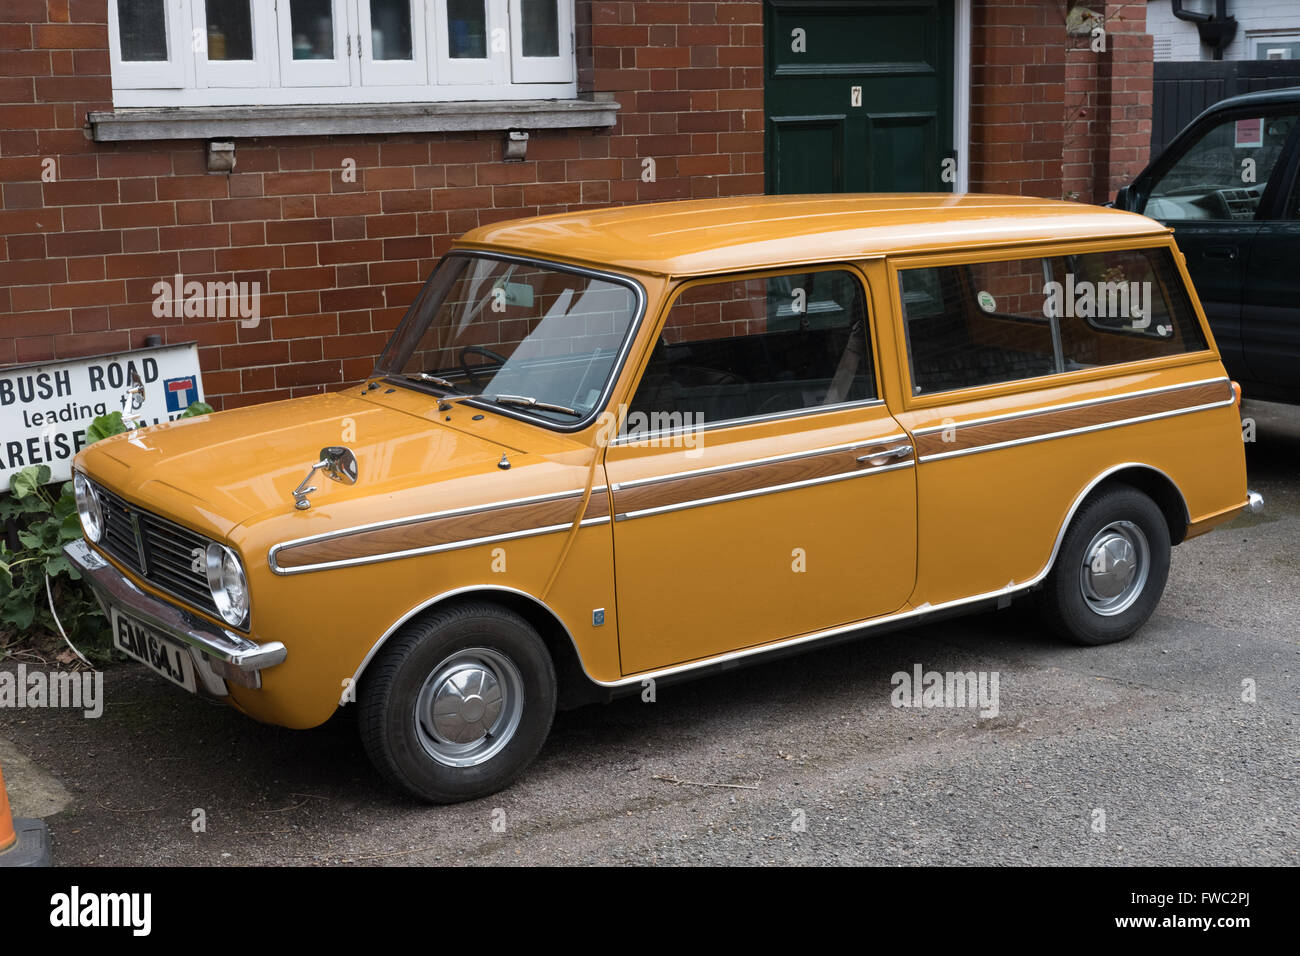 leyland austin mini clubman estate car stock photo royalty free image 101683866 alamy. Black Bedroom Furniture Sets. Home Design Ideas